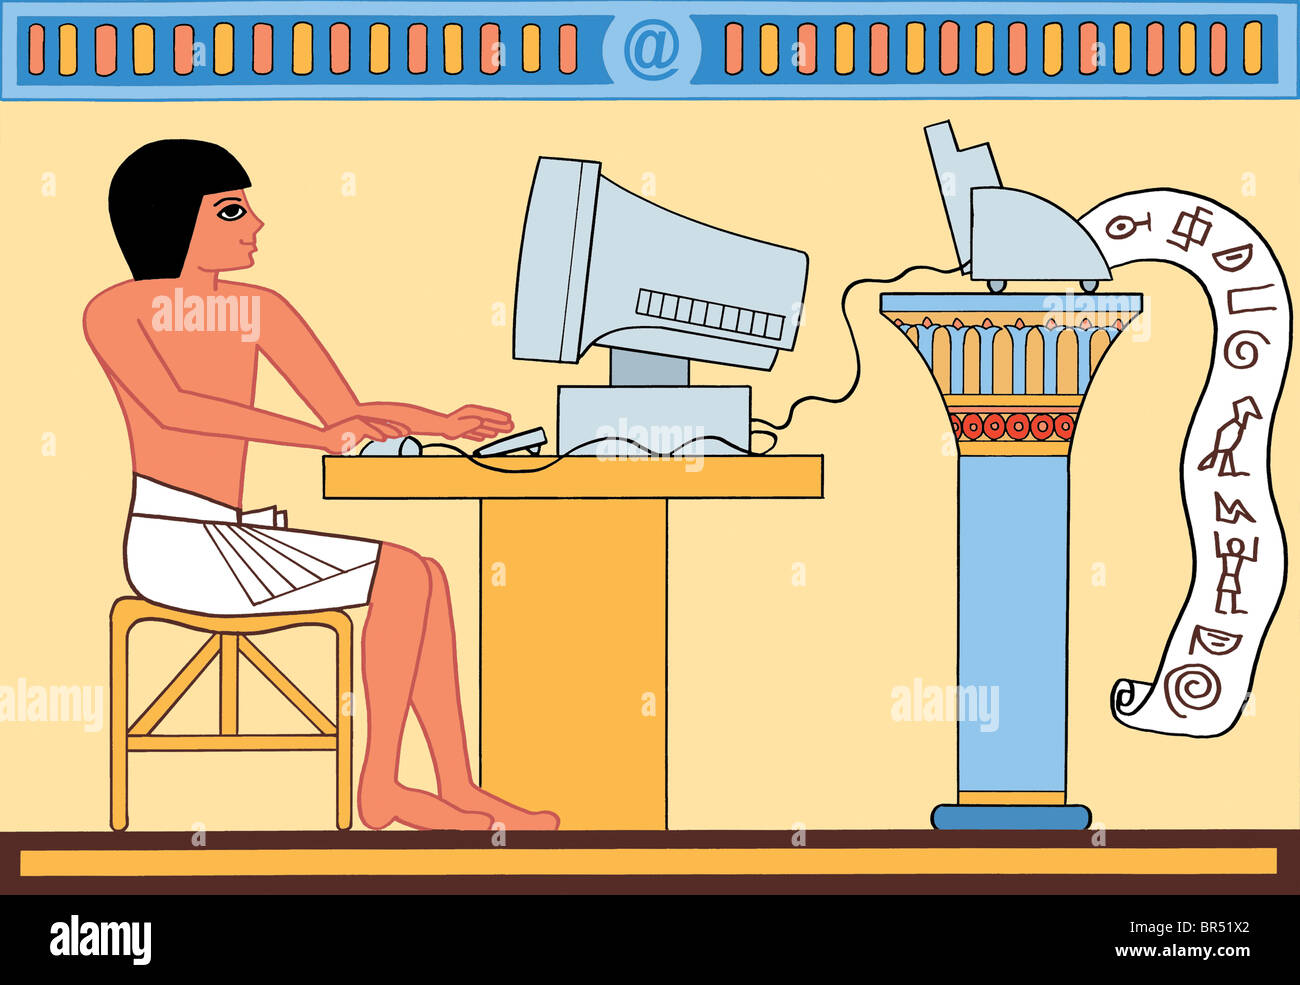 An ancient egyptian using computer and printing out scripts - Stock Image